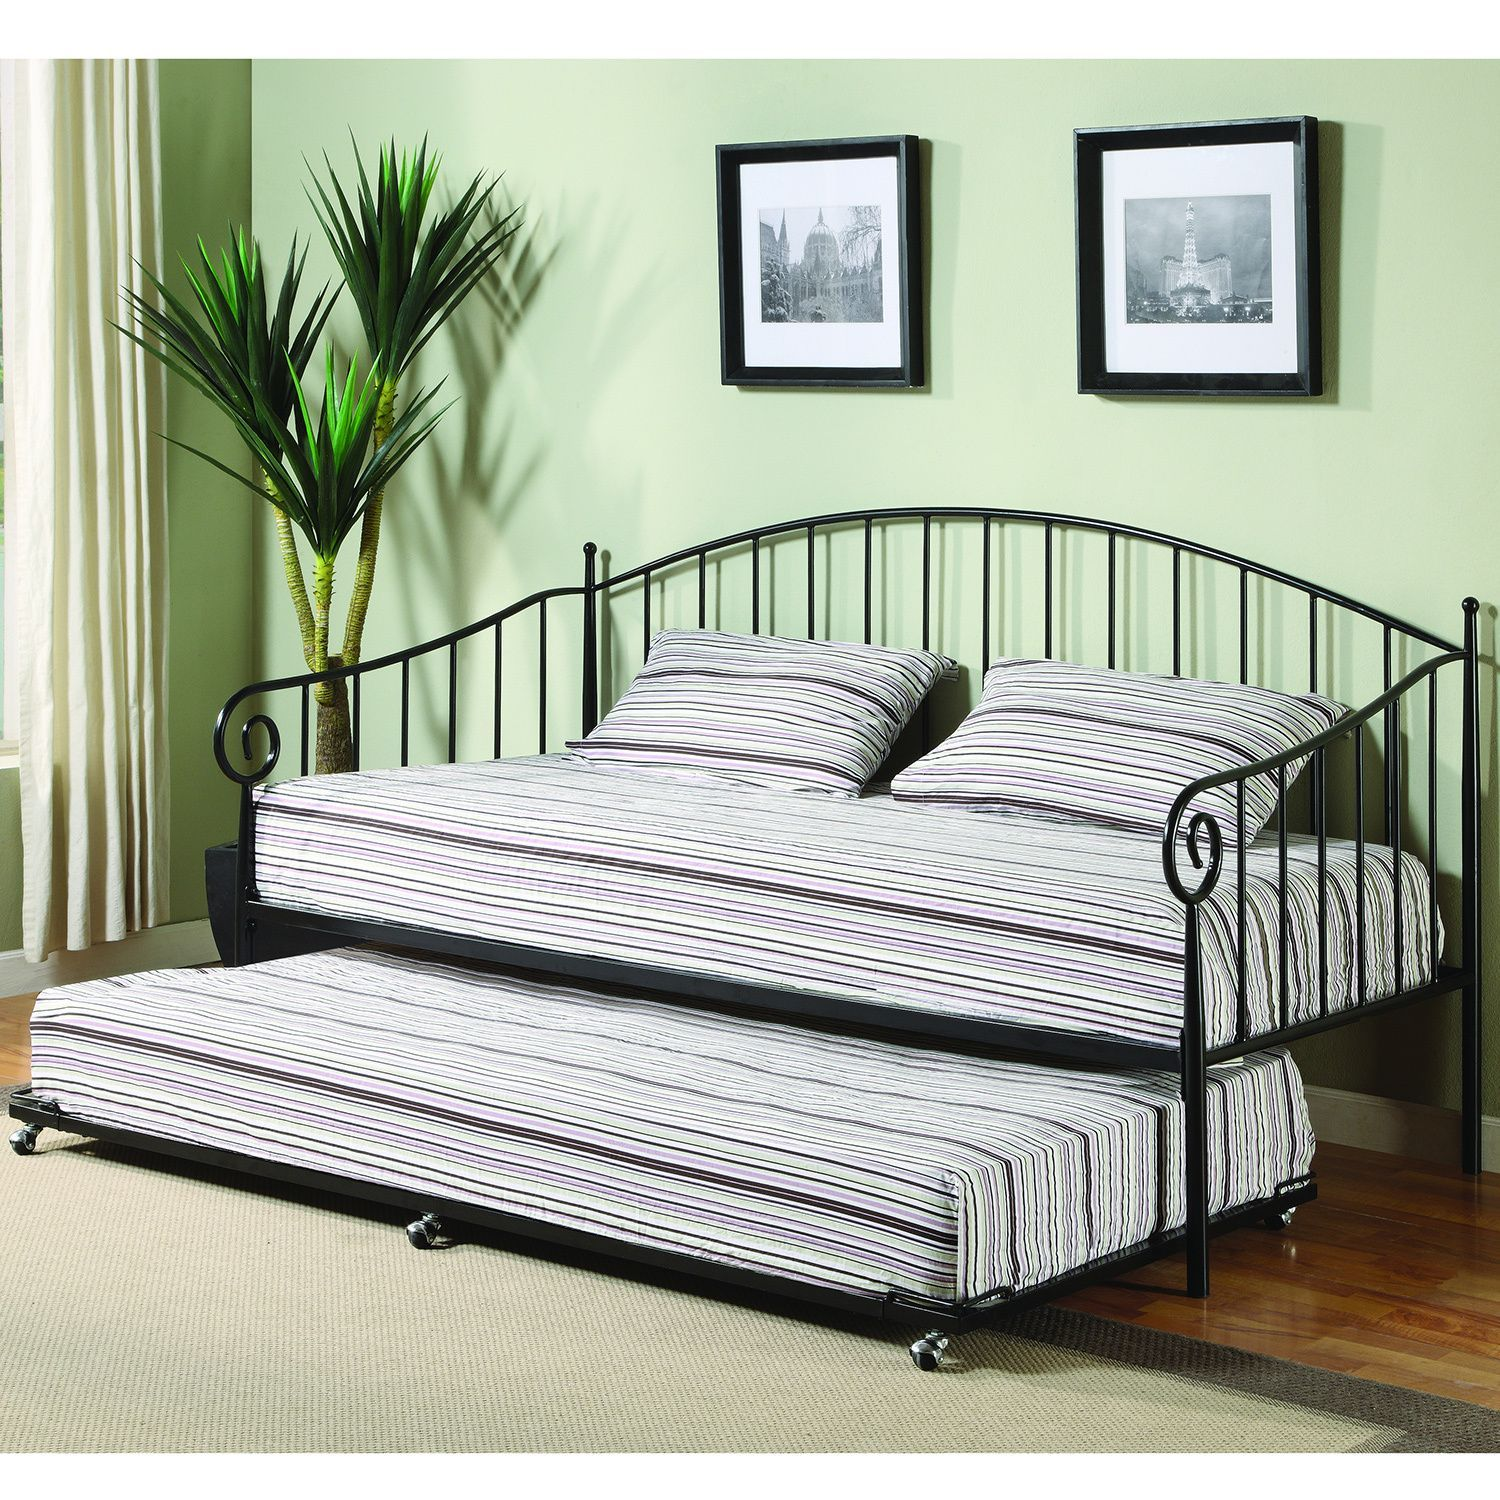 Maximize On Your Space With This Metal Day Bed Frame